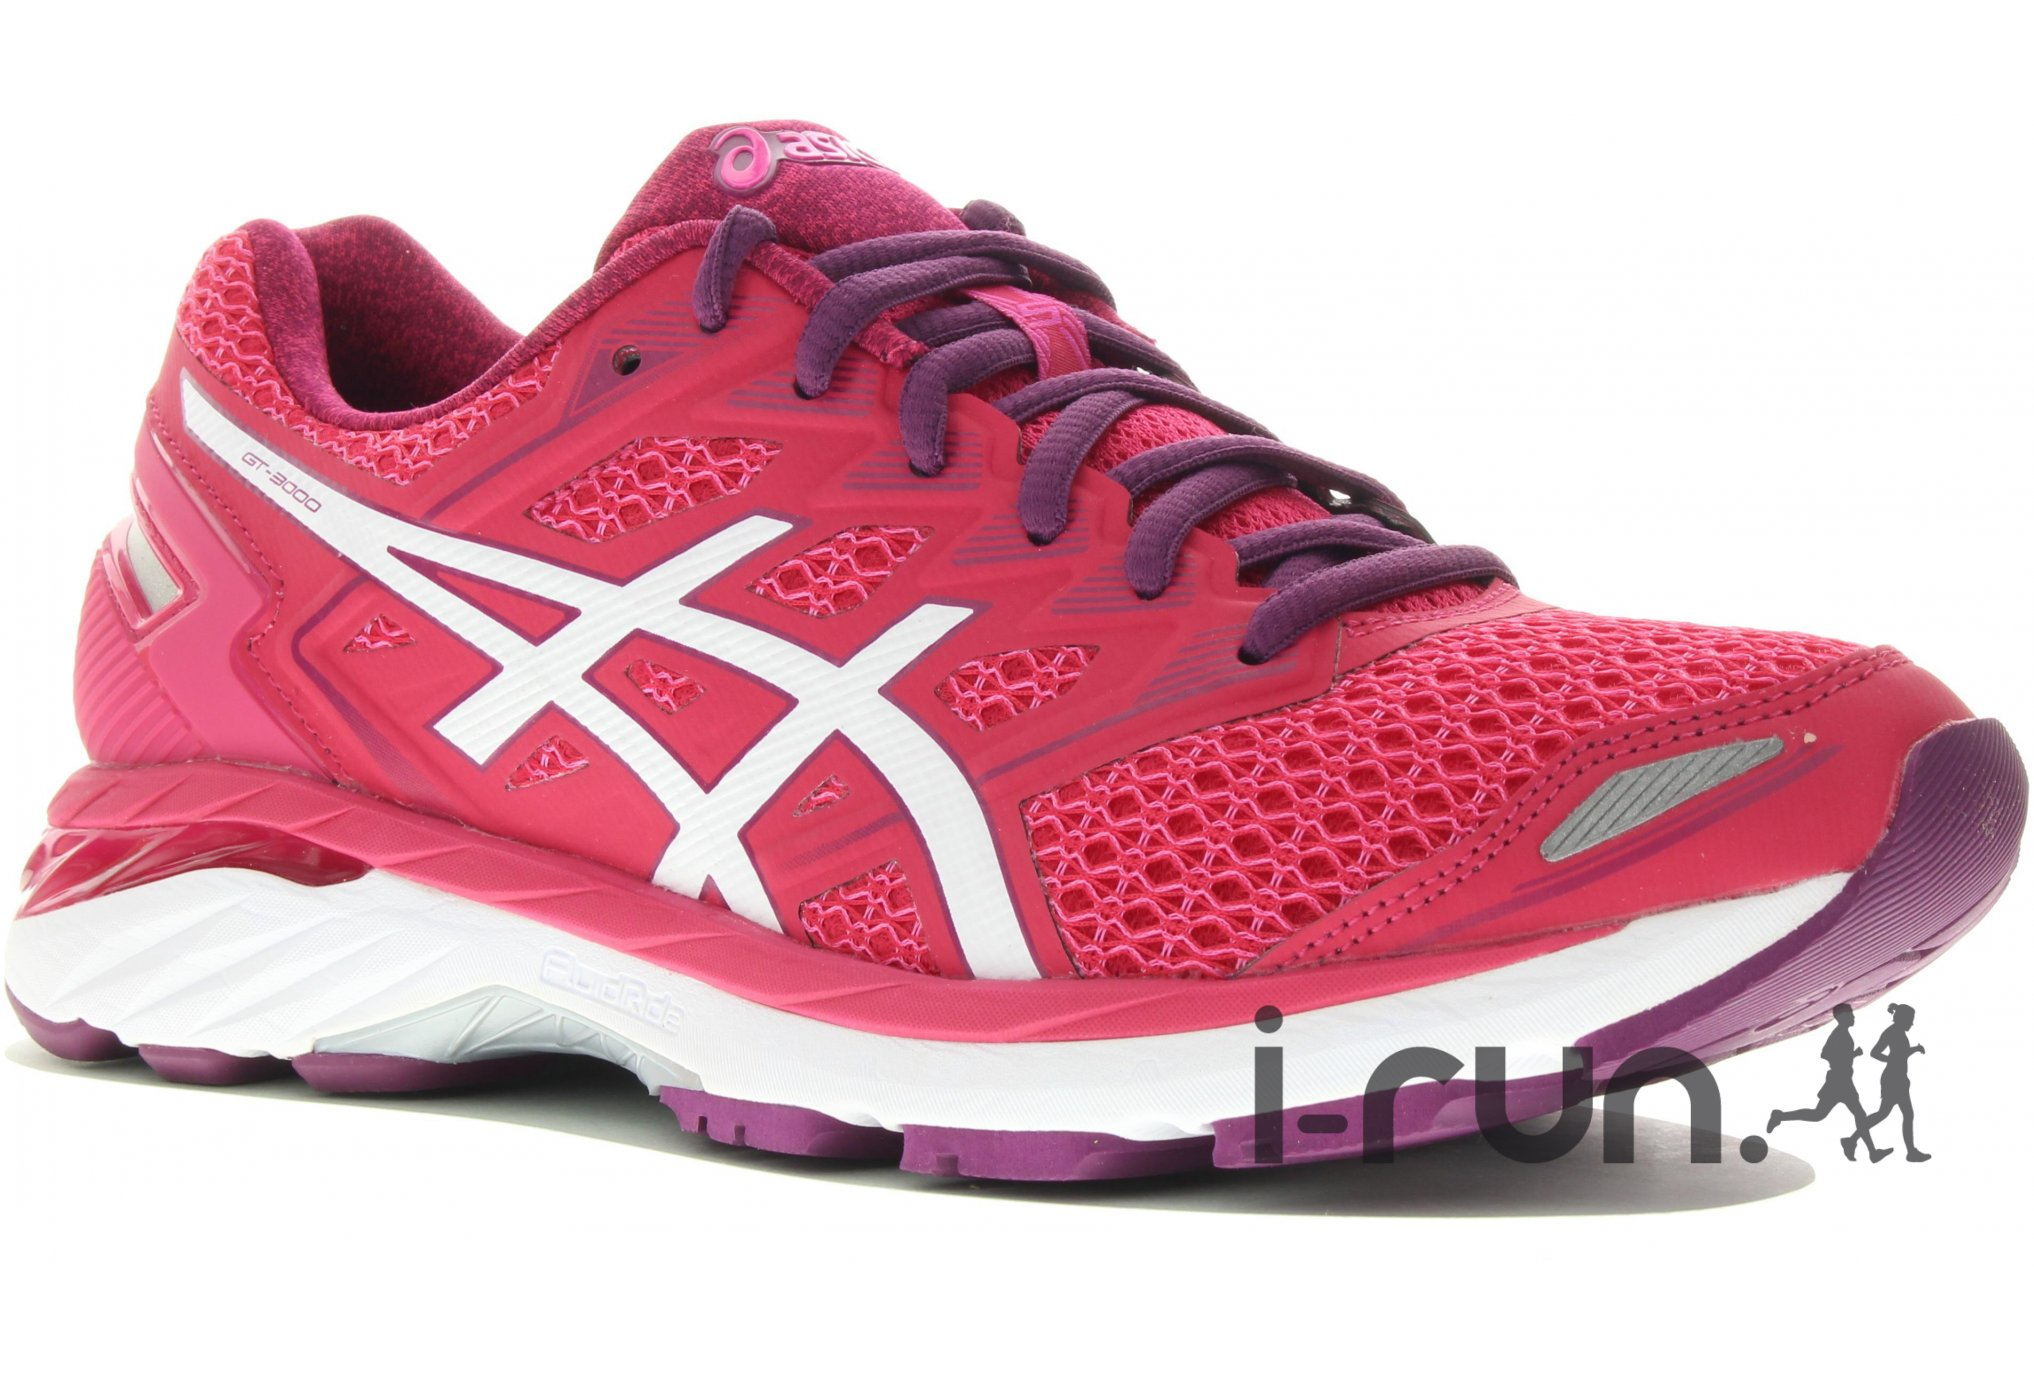 Trail Session - Asics GT 3000 5 W Chaussures running femme